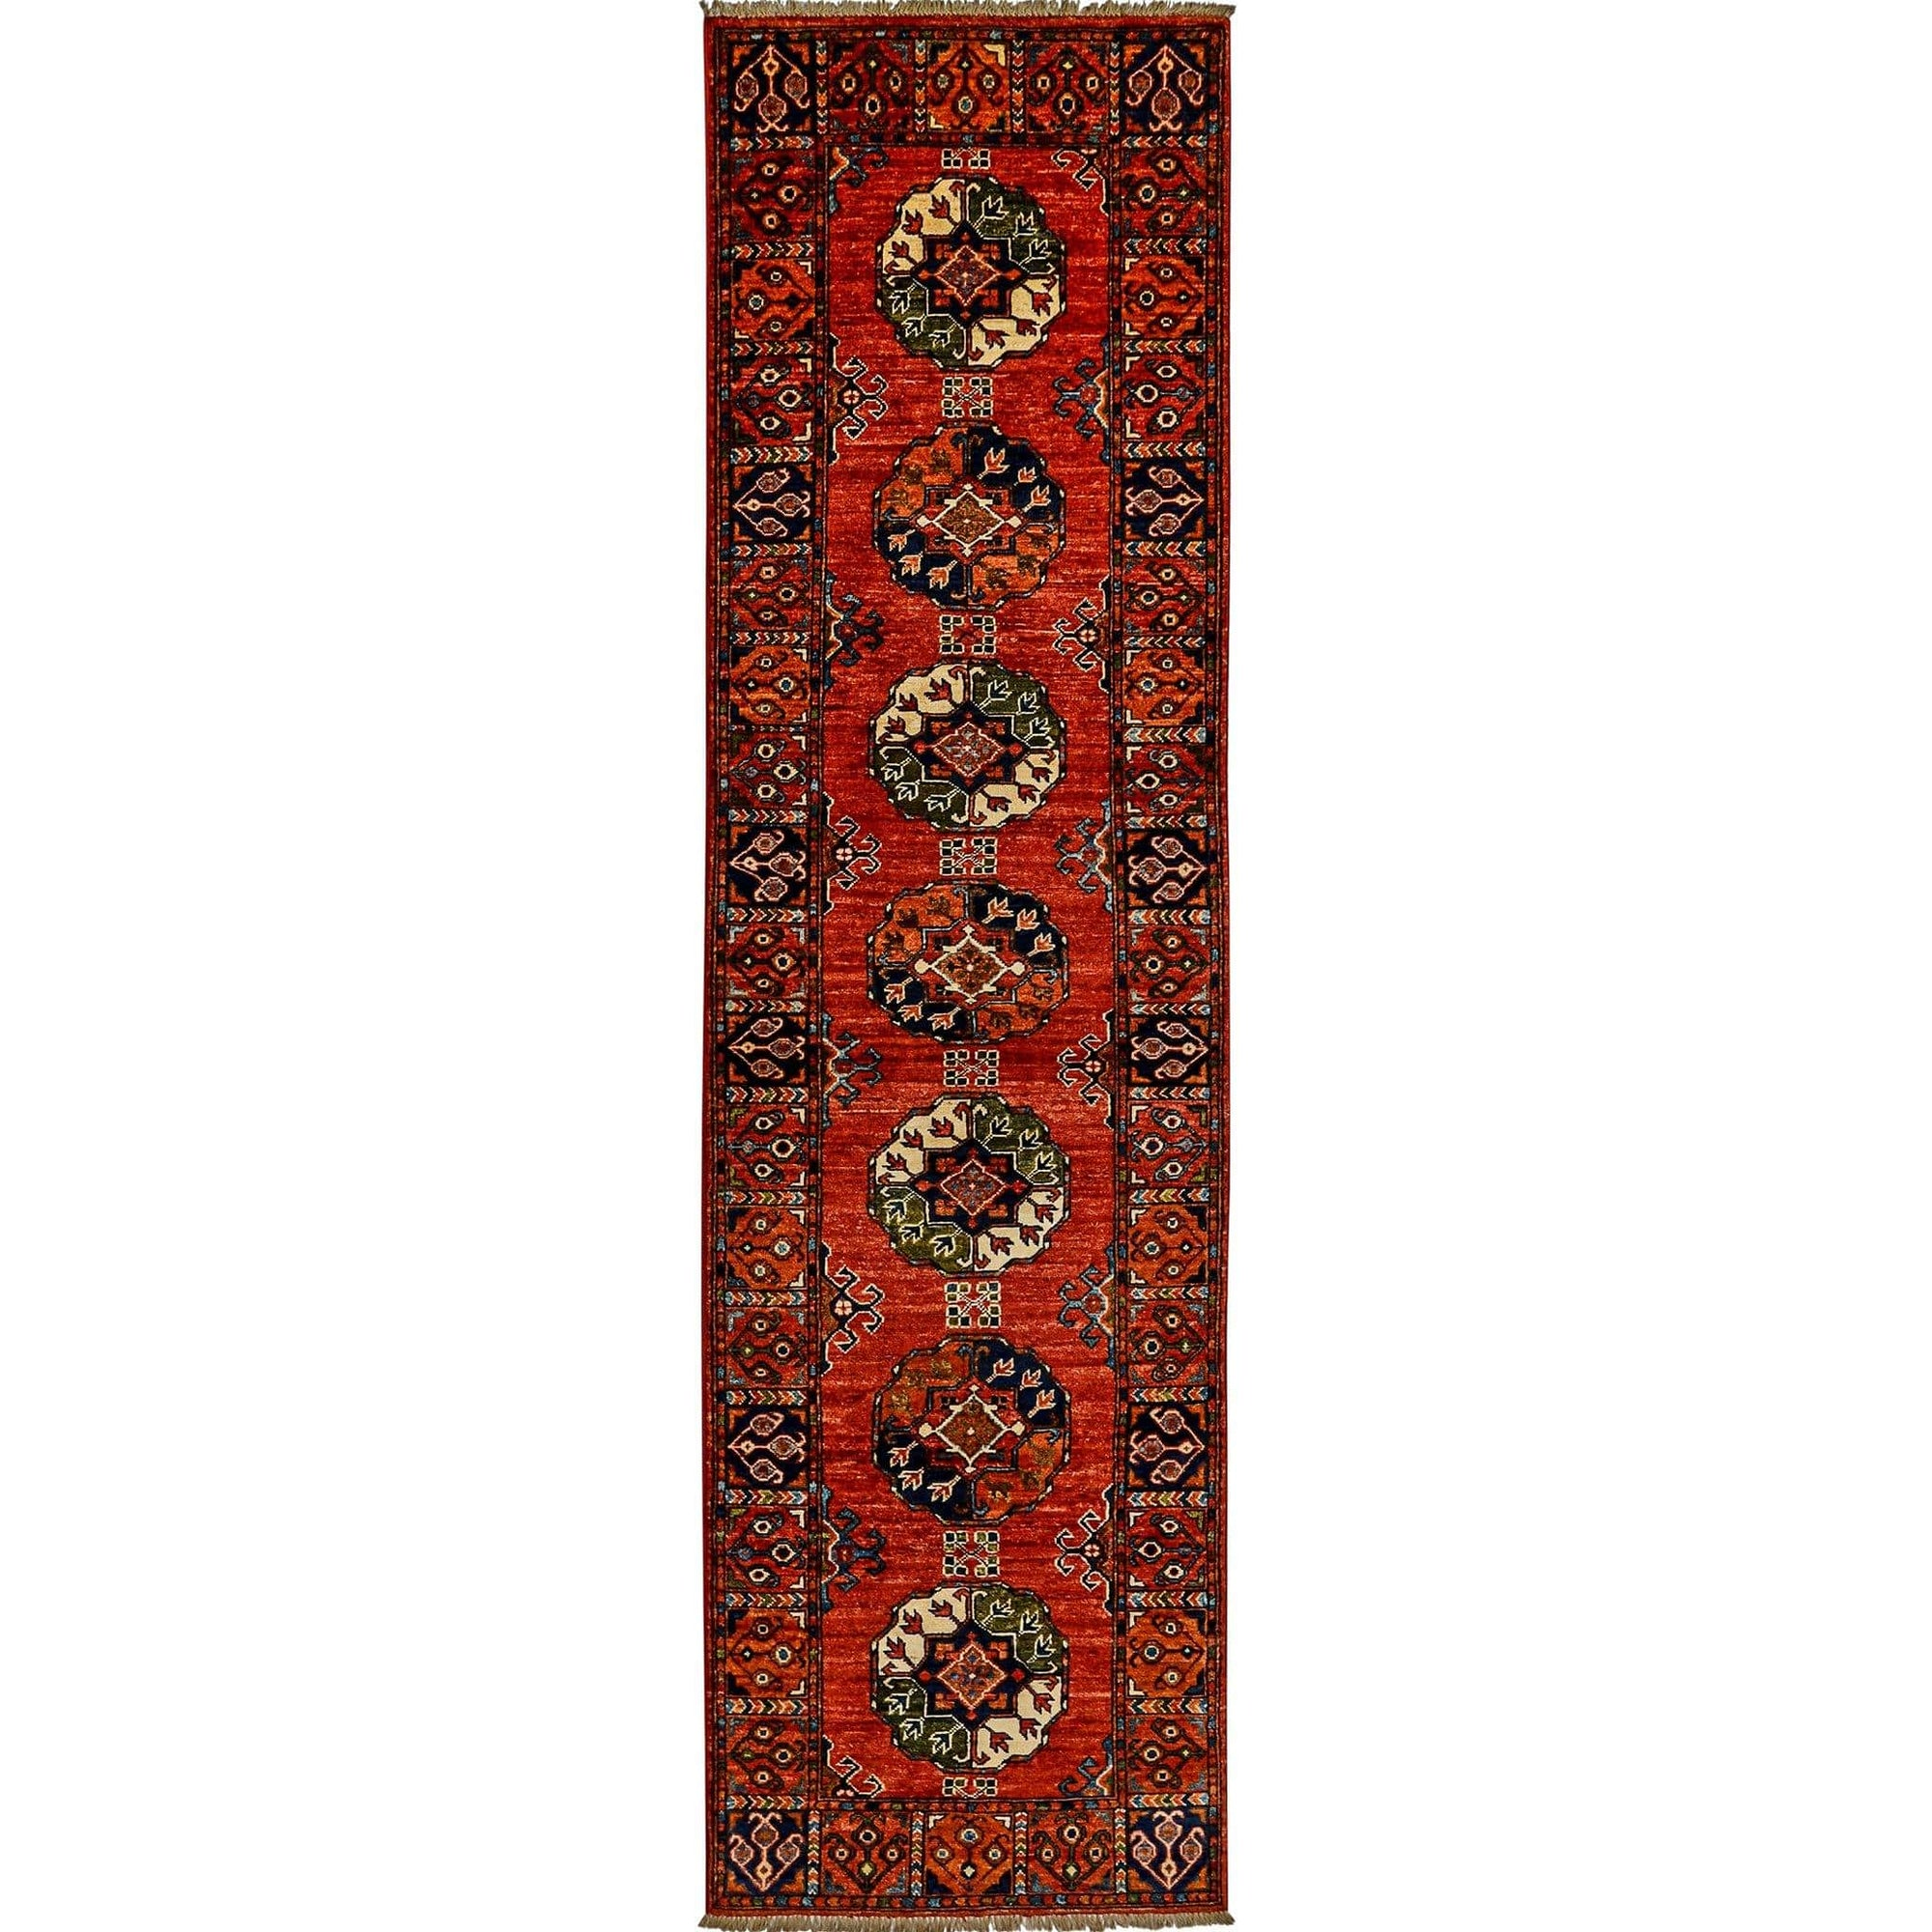 Fine Hand-knotted Wool Tribal Runner 84cm x 298cm Persian-Rug | House-of-Haghi | NewMarket | Auckland | NZ | Handmade Persian Rugs | Hand Knotted Persian Rugs